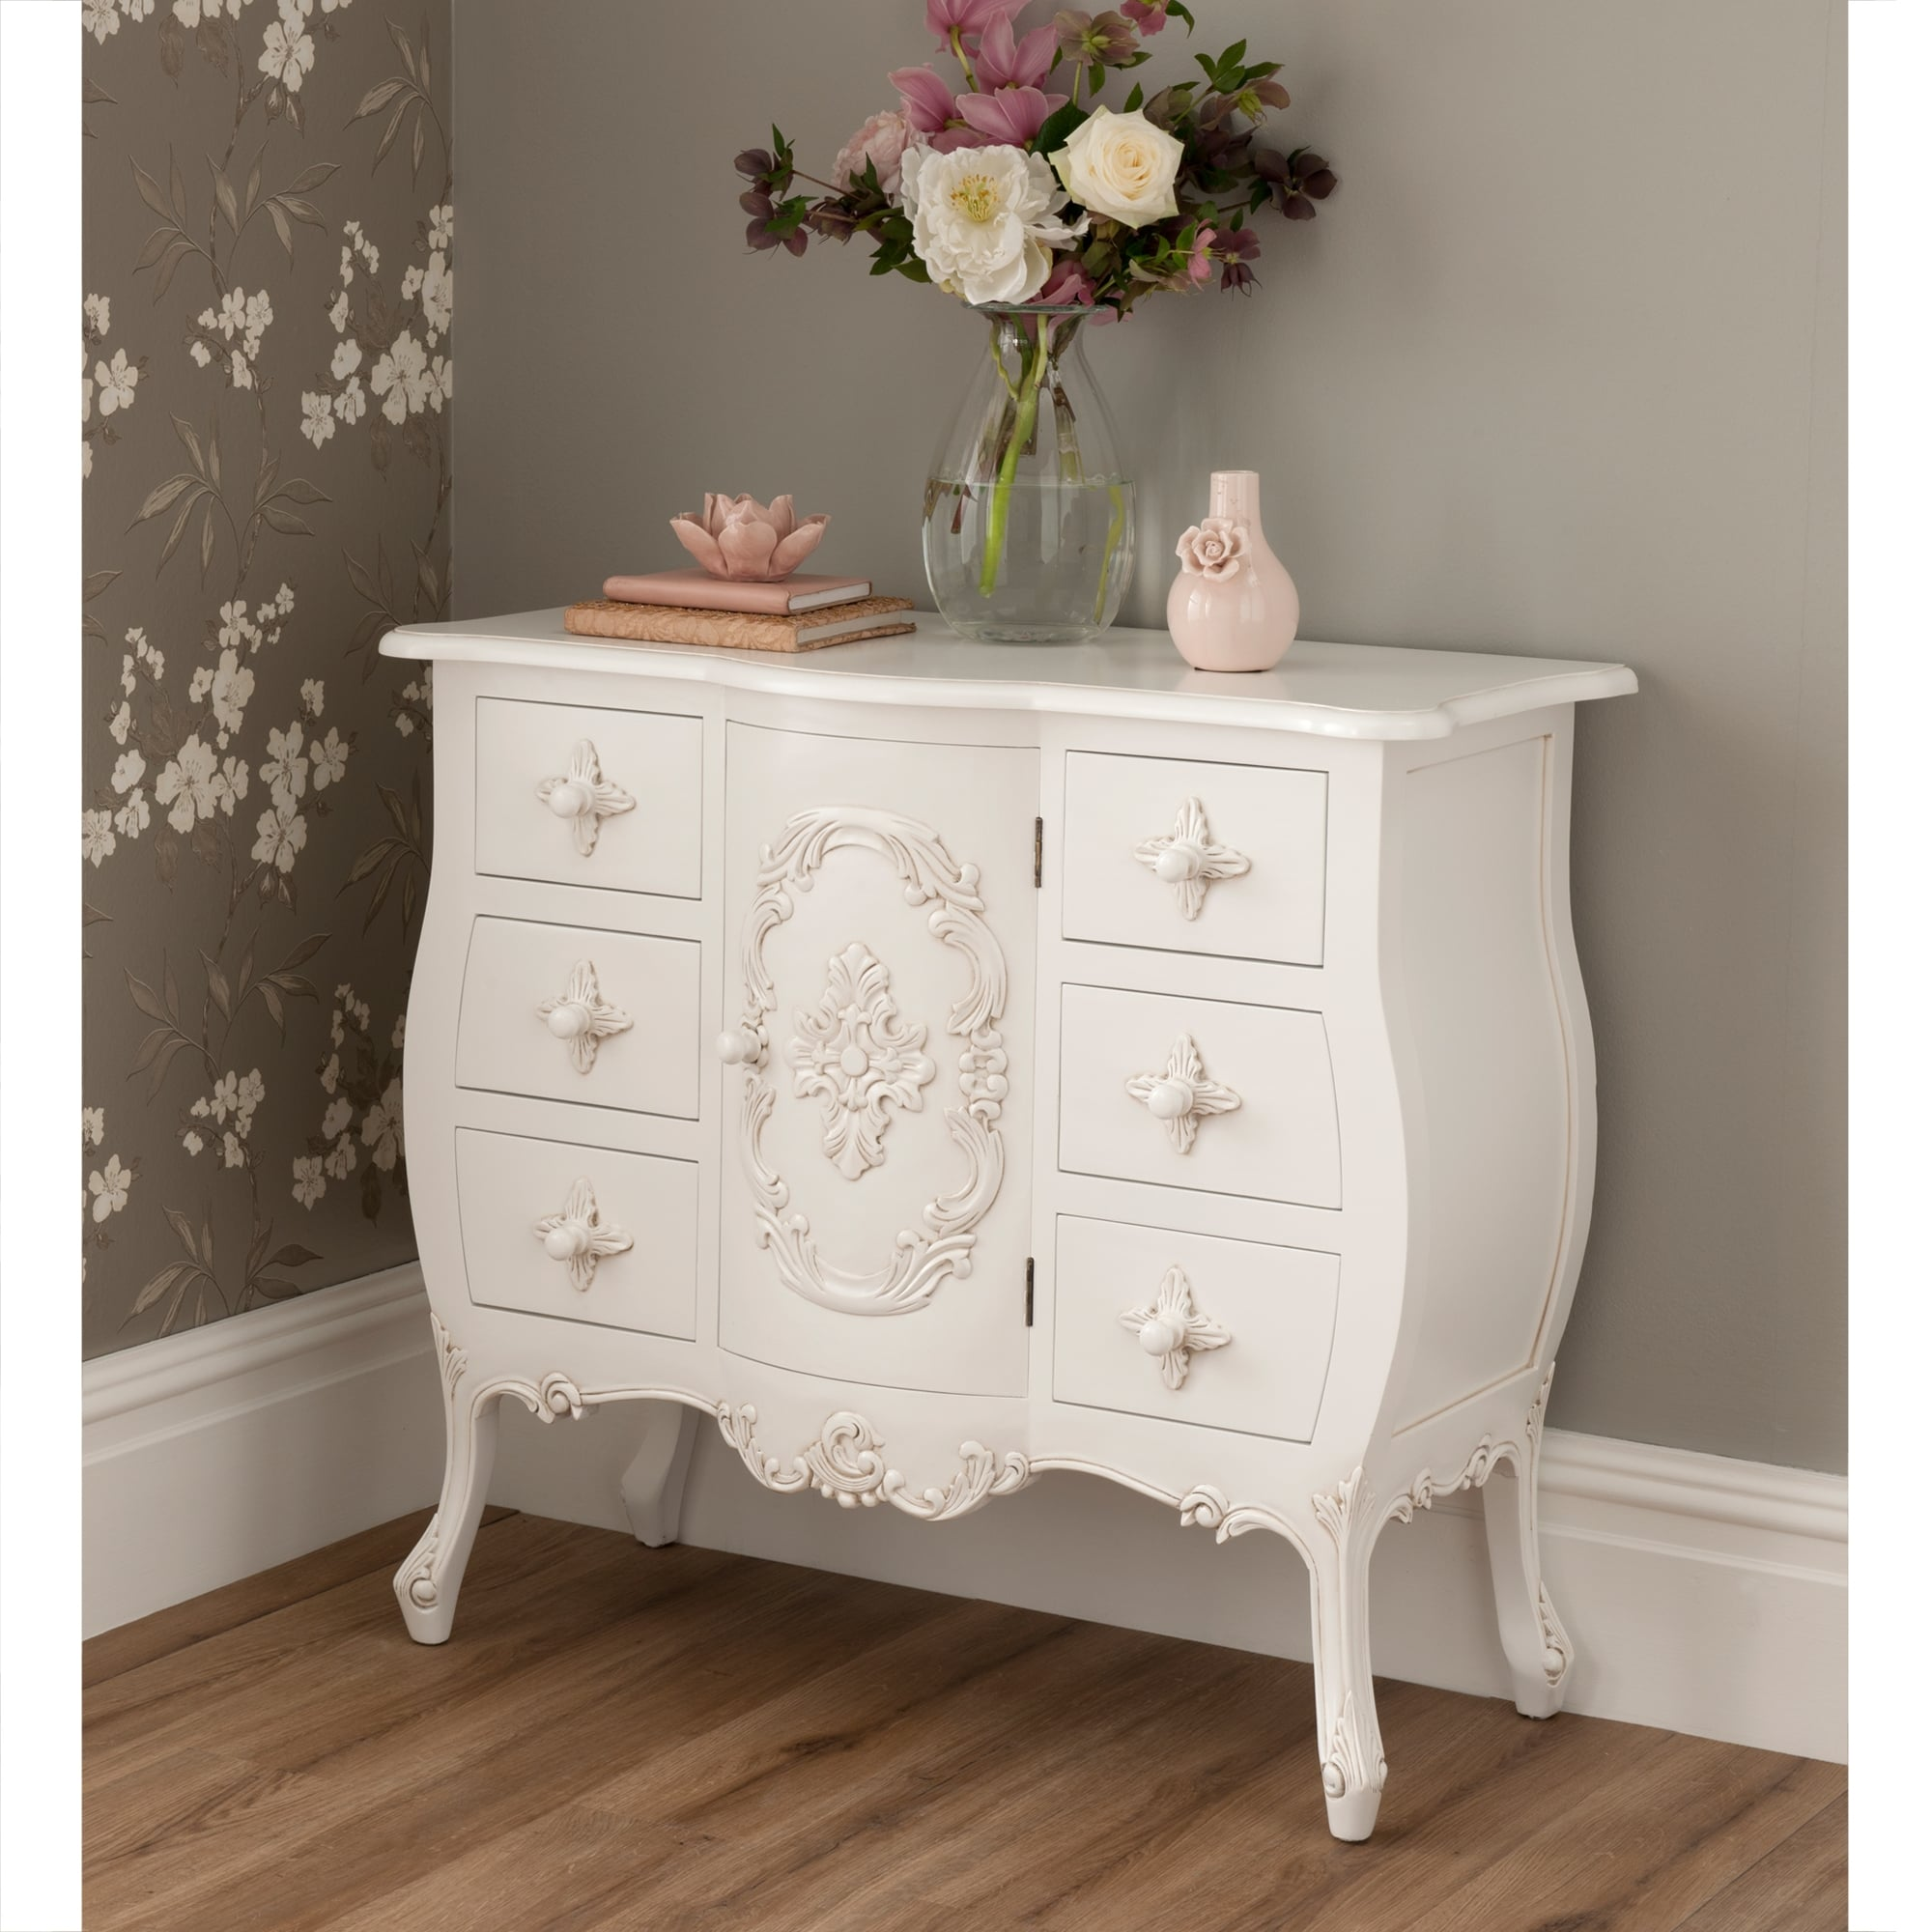 ikea pin knobs on s hemnes bedroom blush and home gold goods dressers bella clear the acrylic dresser